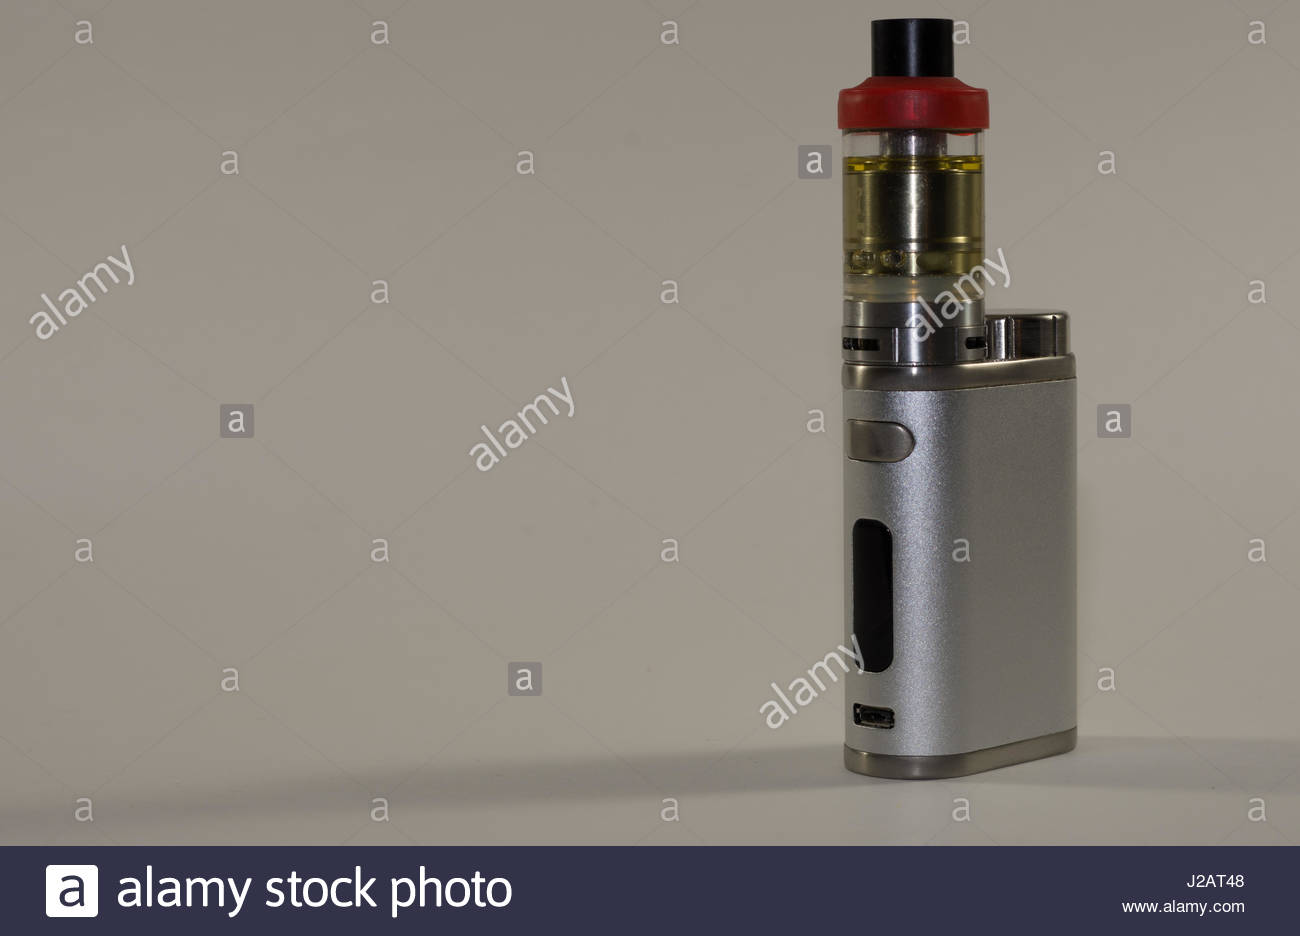 Personal vaping device on white background - Stock Image